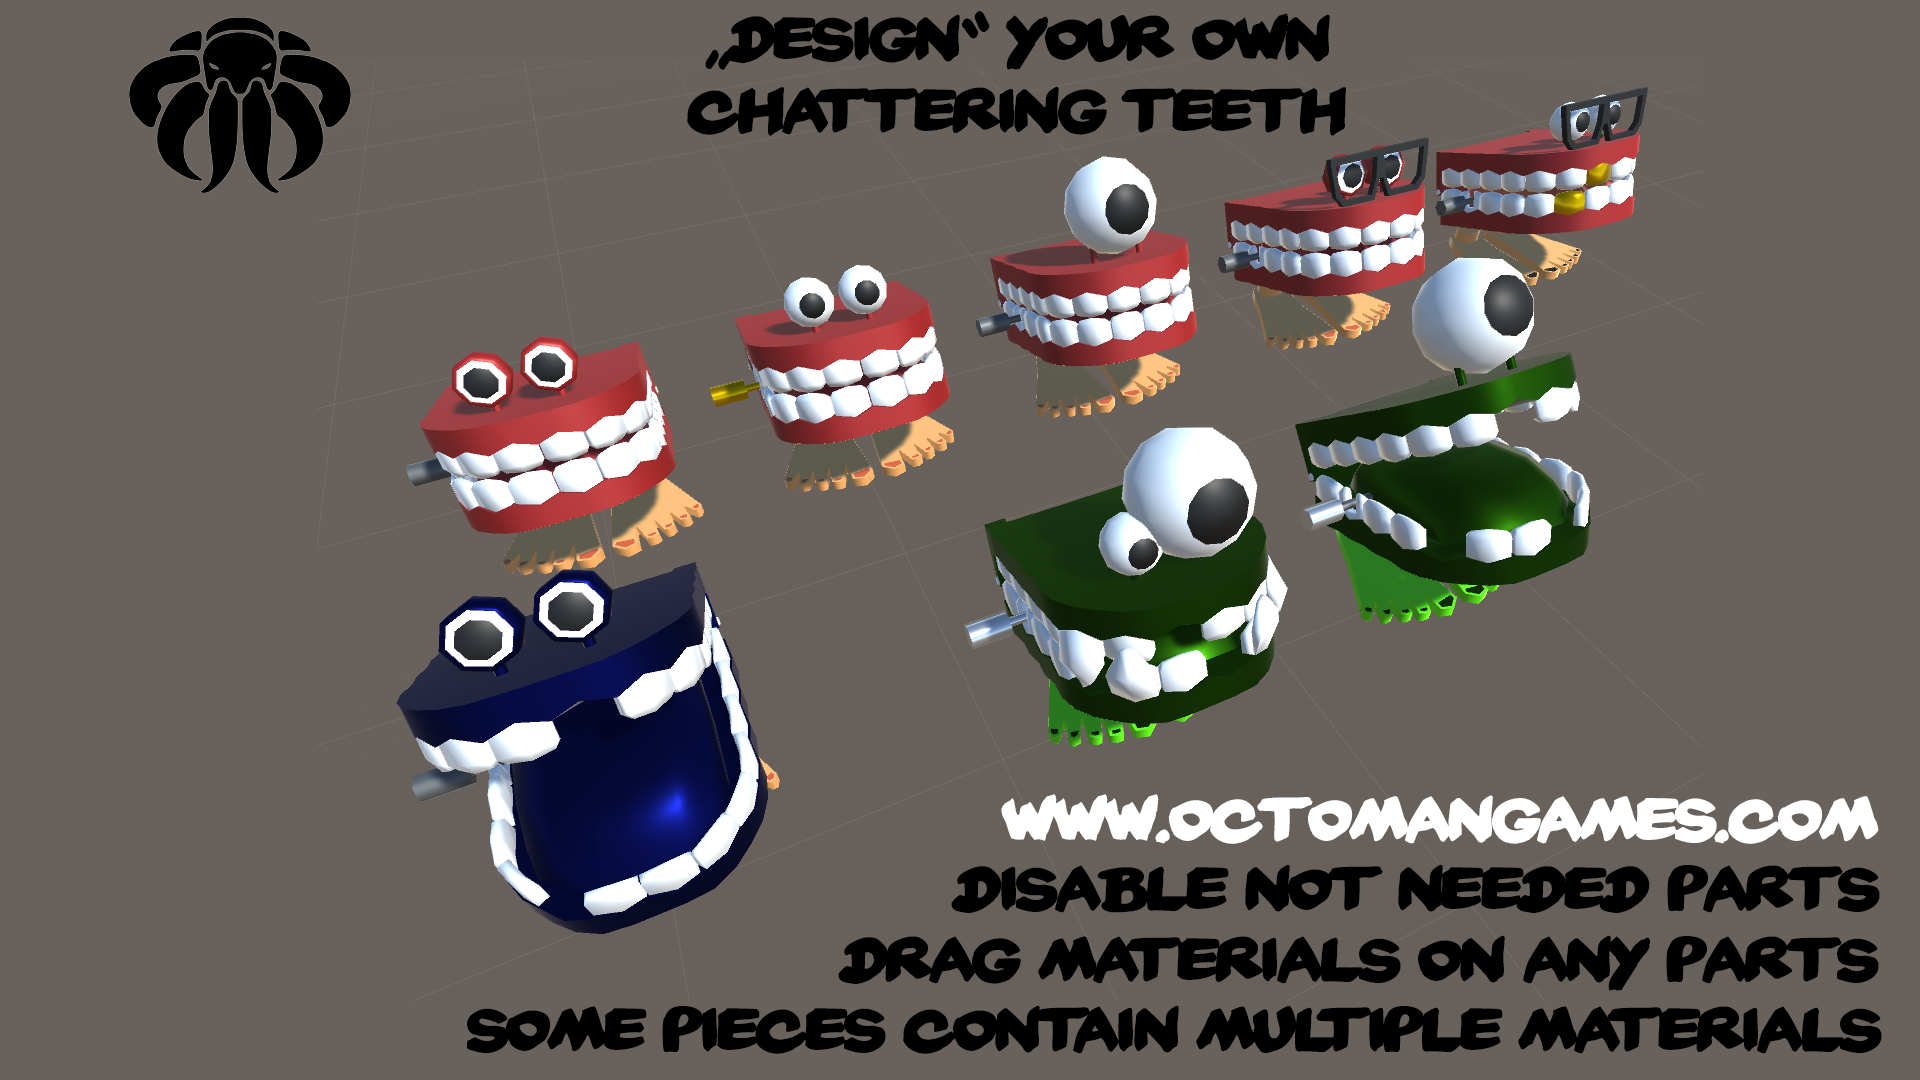 Chattering Teeth Design your own!